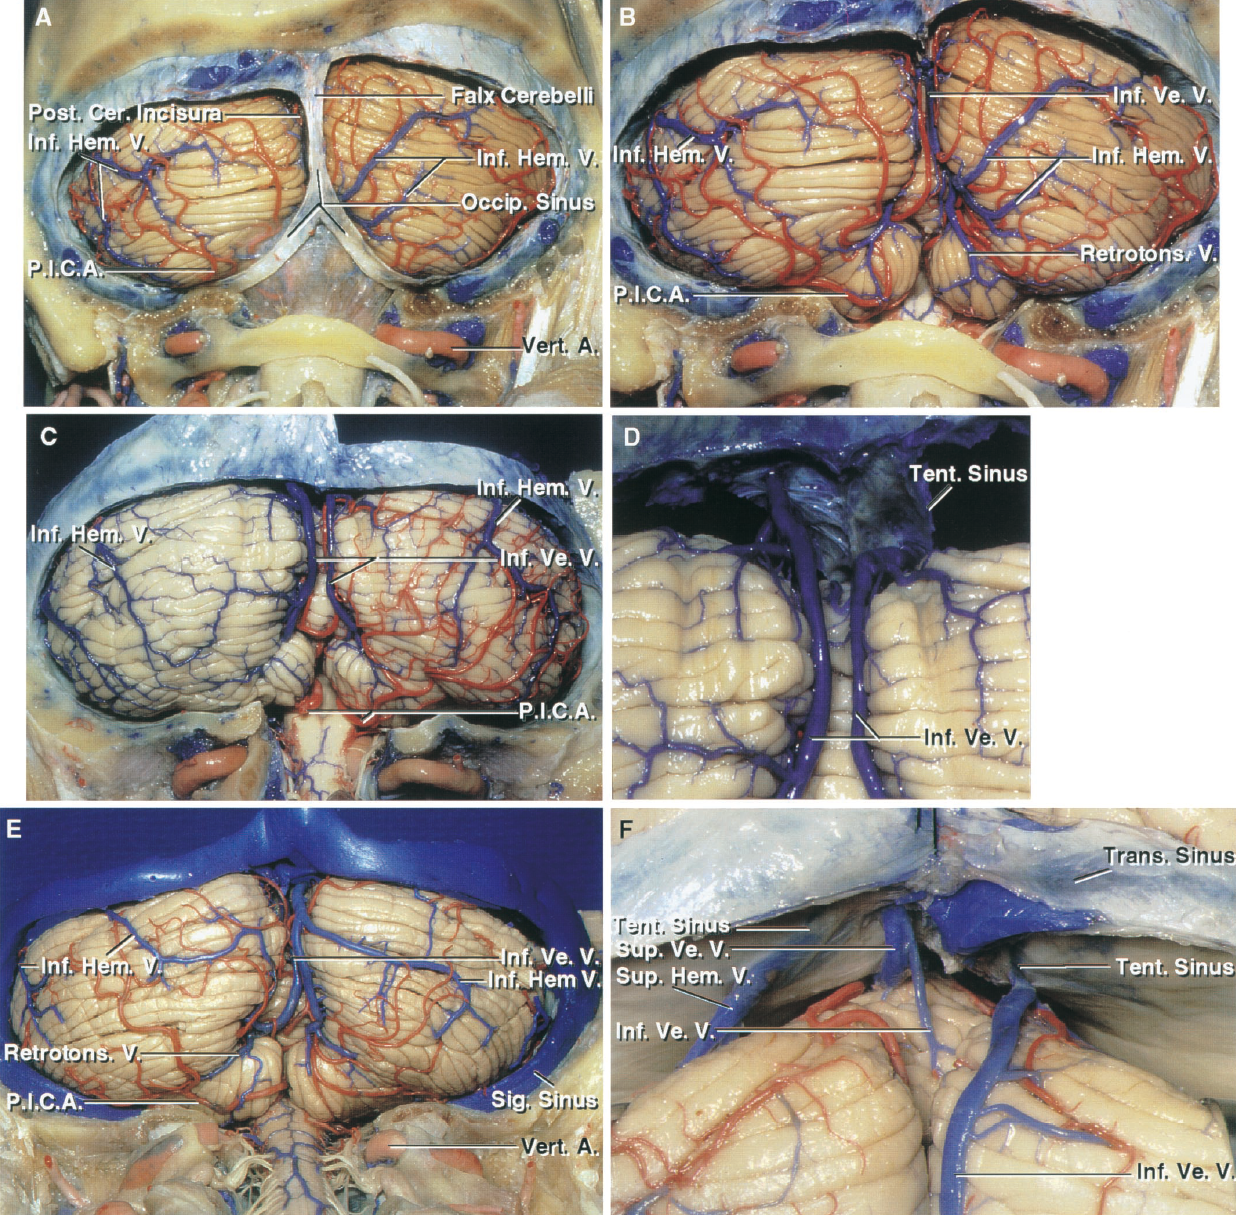 FIGURE 3.6. Suboccipital surface. A, the falx cerebelli, which fits into the posterior cerebellar incisura in which the vermis is partially buried, has been preserved. The inferior hemispheric veins drain the hemispheric portion of the suboccipital surface. A large left inferior hemispheric vein ascends toward a tentorial sinus. A large right inferior hemispheric vein descends medially to join an inferior vermian vein, which ascends to empty into the sinuses in the tentorium. The occipital sinus courses within the falx cerebelli and joins the torcula above and the sigmoid sinus below. B, the falx cerebelli has been removed to expose the inferior vermian veins, which ascend and pass below the transverse sinus to empty into the tentorial sinuses. The retrotonsillar veins and other veins around the superior pole of the tonsils ascend to join the inferior vermian veins. C and D, another cerebellum. C, the branches of the PICA supplying the left hemisphere have been removed, but those on the right have been preserved. The inferior vermian and hemispheric veins on both halves of the suboccipital surface ascend and pass below the transverse sinus to empty into the sinuses in the tentorium. D, enlarged view of the inferior vermian veins that ascend to empty into sinuses in the tentorium. E, another cerebellum. A large right inferior hemispheric vein joins an inferior vermian vein that crosses the upper edge of the suboccipital surface and courses for a short distance on the tentorial surface before emptying into a tentorial sinus. F, enlarged view of another cerebellum. The large right inferior vermian vein passes forward to join the sinuses in the tentorium. A superior hemispheric vein from the tentorial surface descends to join a tentorial sinus. In the midline, a superior and inferior vermian join to empty into a tentorial sinus. A., artery; Cer., cerebellar; Hem., hemispheric; Inf., inferior; Occip., occipital; P.I.C.A., posteroinferior cerebellar artery; Post., posterior; Retroton., retrotonsillar; Sig., sigmoid; Sup., superior; Tent., tentorial; Trans., transverse; V., vein; Ve., vermian; Vert., vertebral.